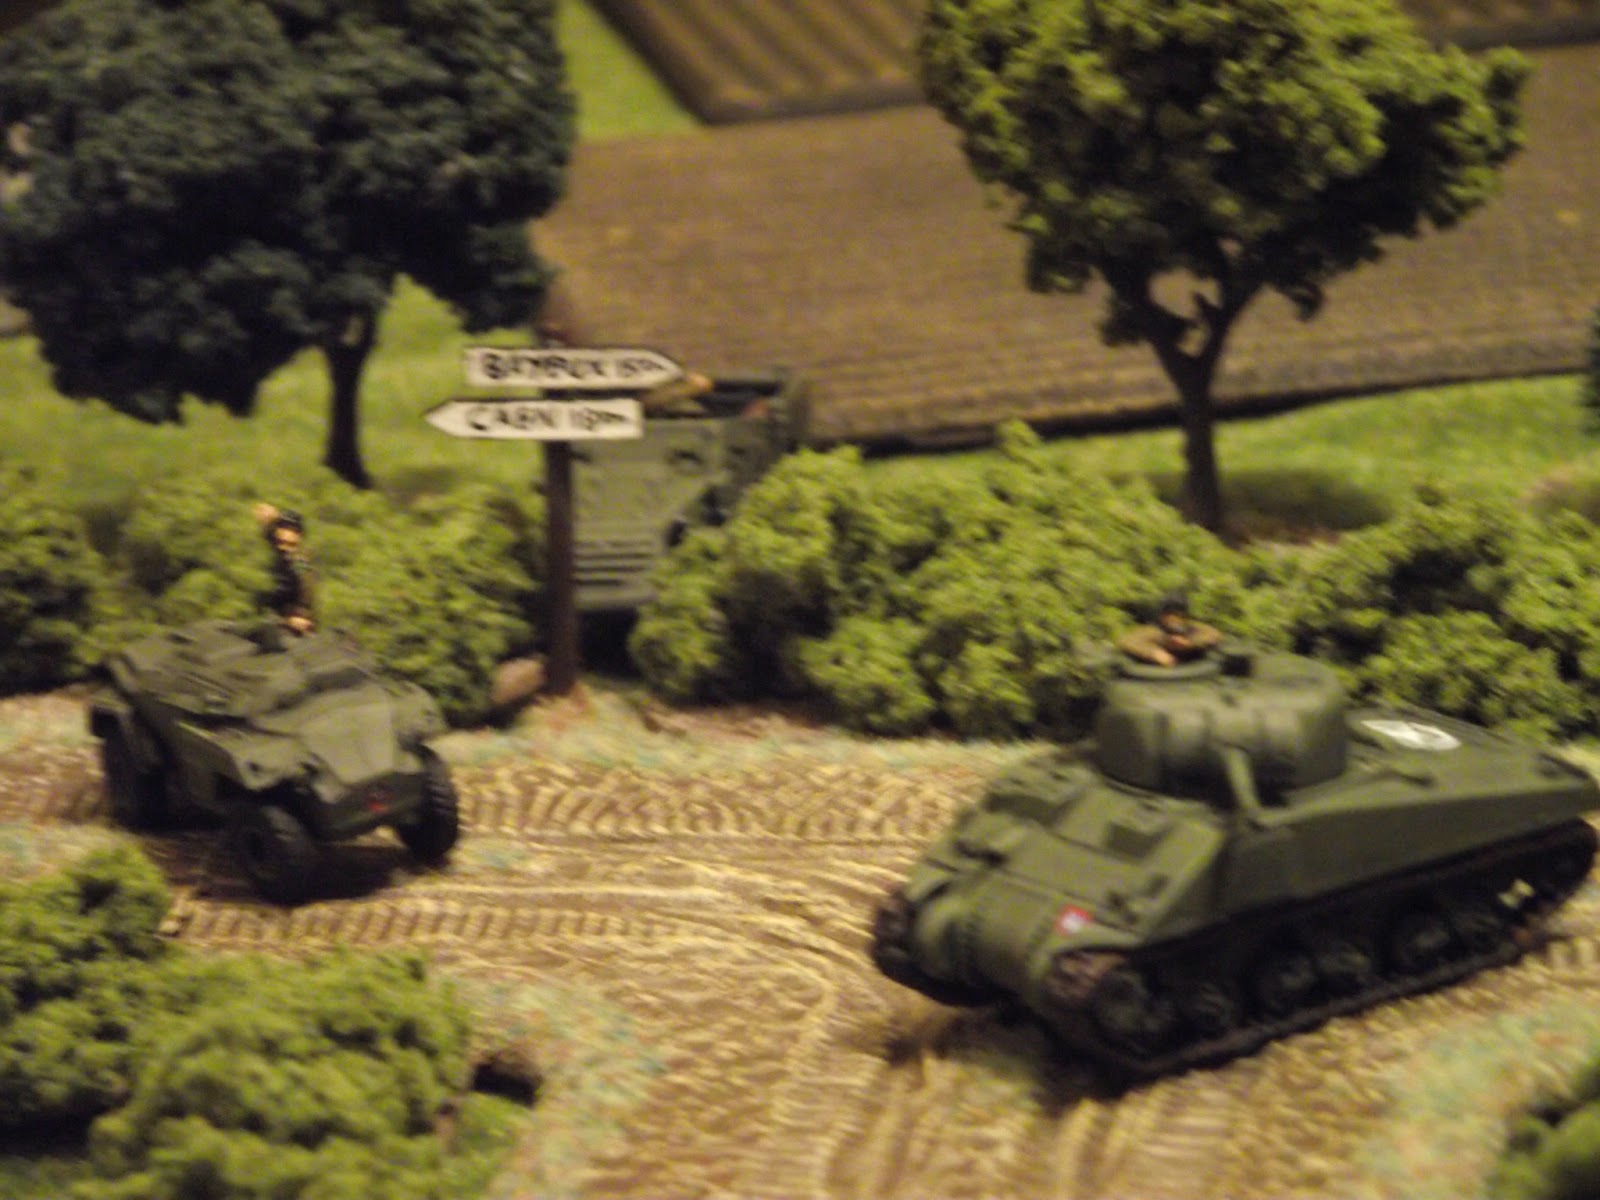 The British cannot seem to spot into the town, so the armour decides to force the issue by advancing around the bend.